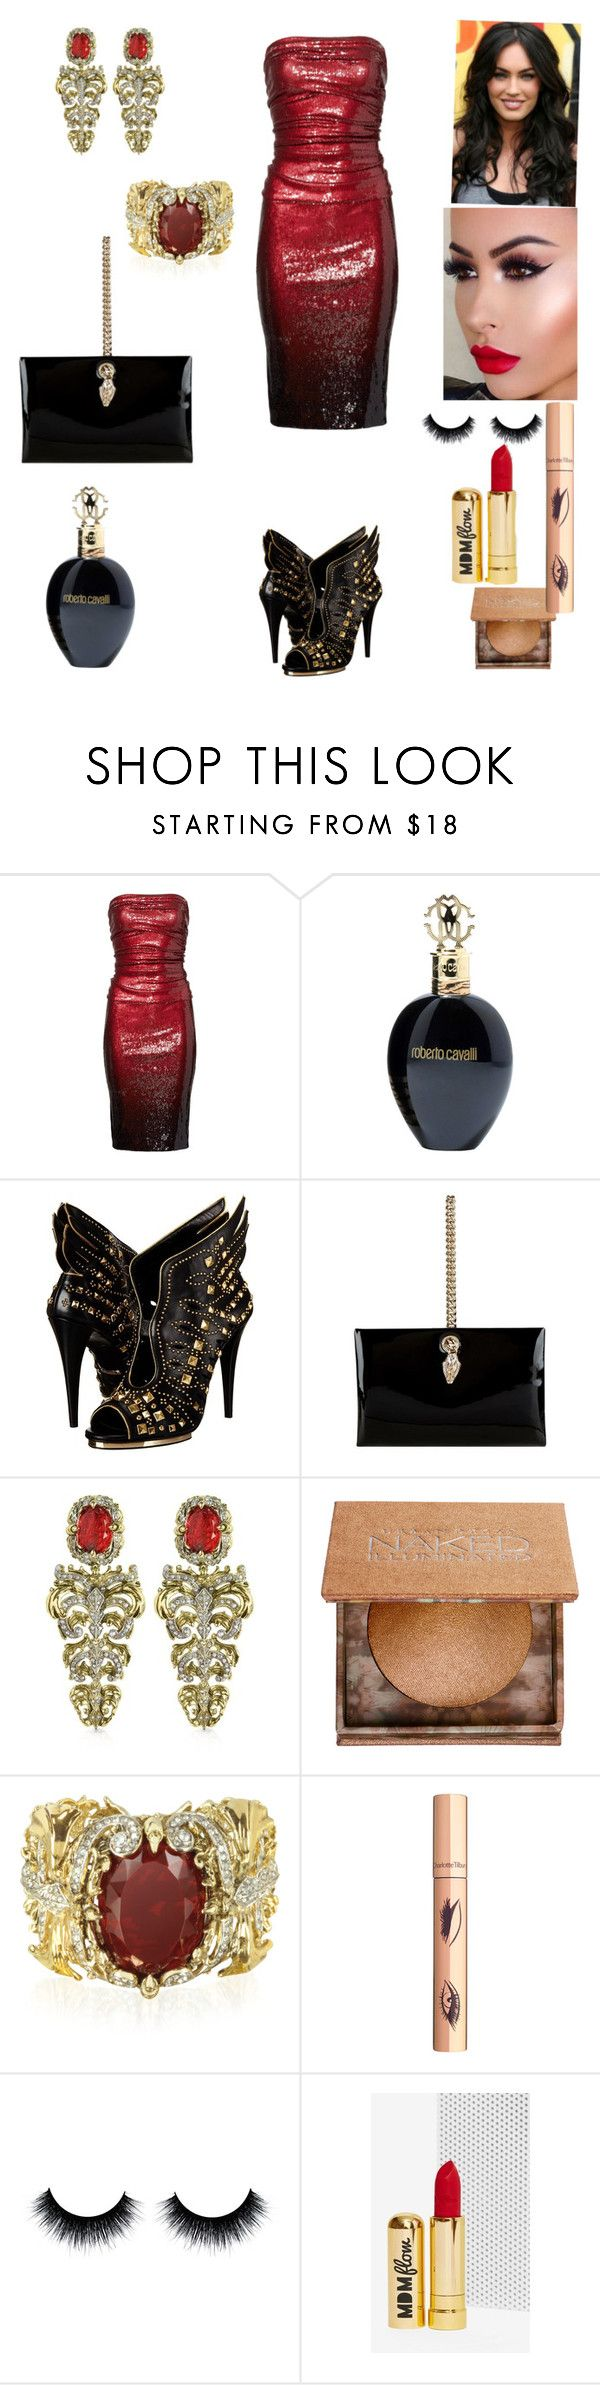 """Untitled #182"" by iraida-g ❤ liked on Polyvore featuring Donna Karan, Roberto Cavalli, Urban Decay and MDMflow"